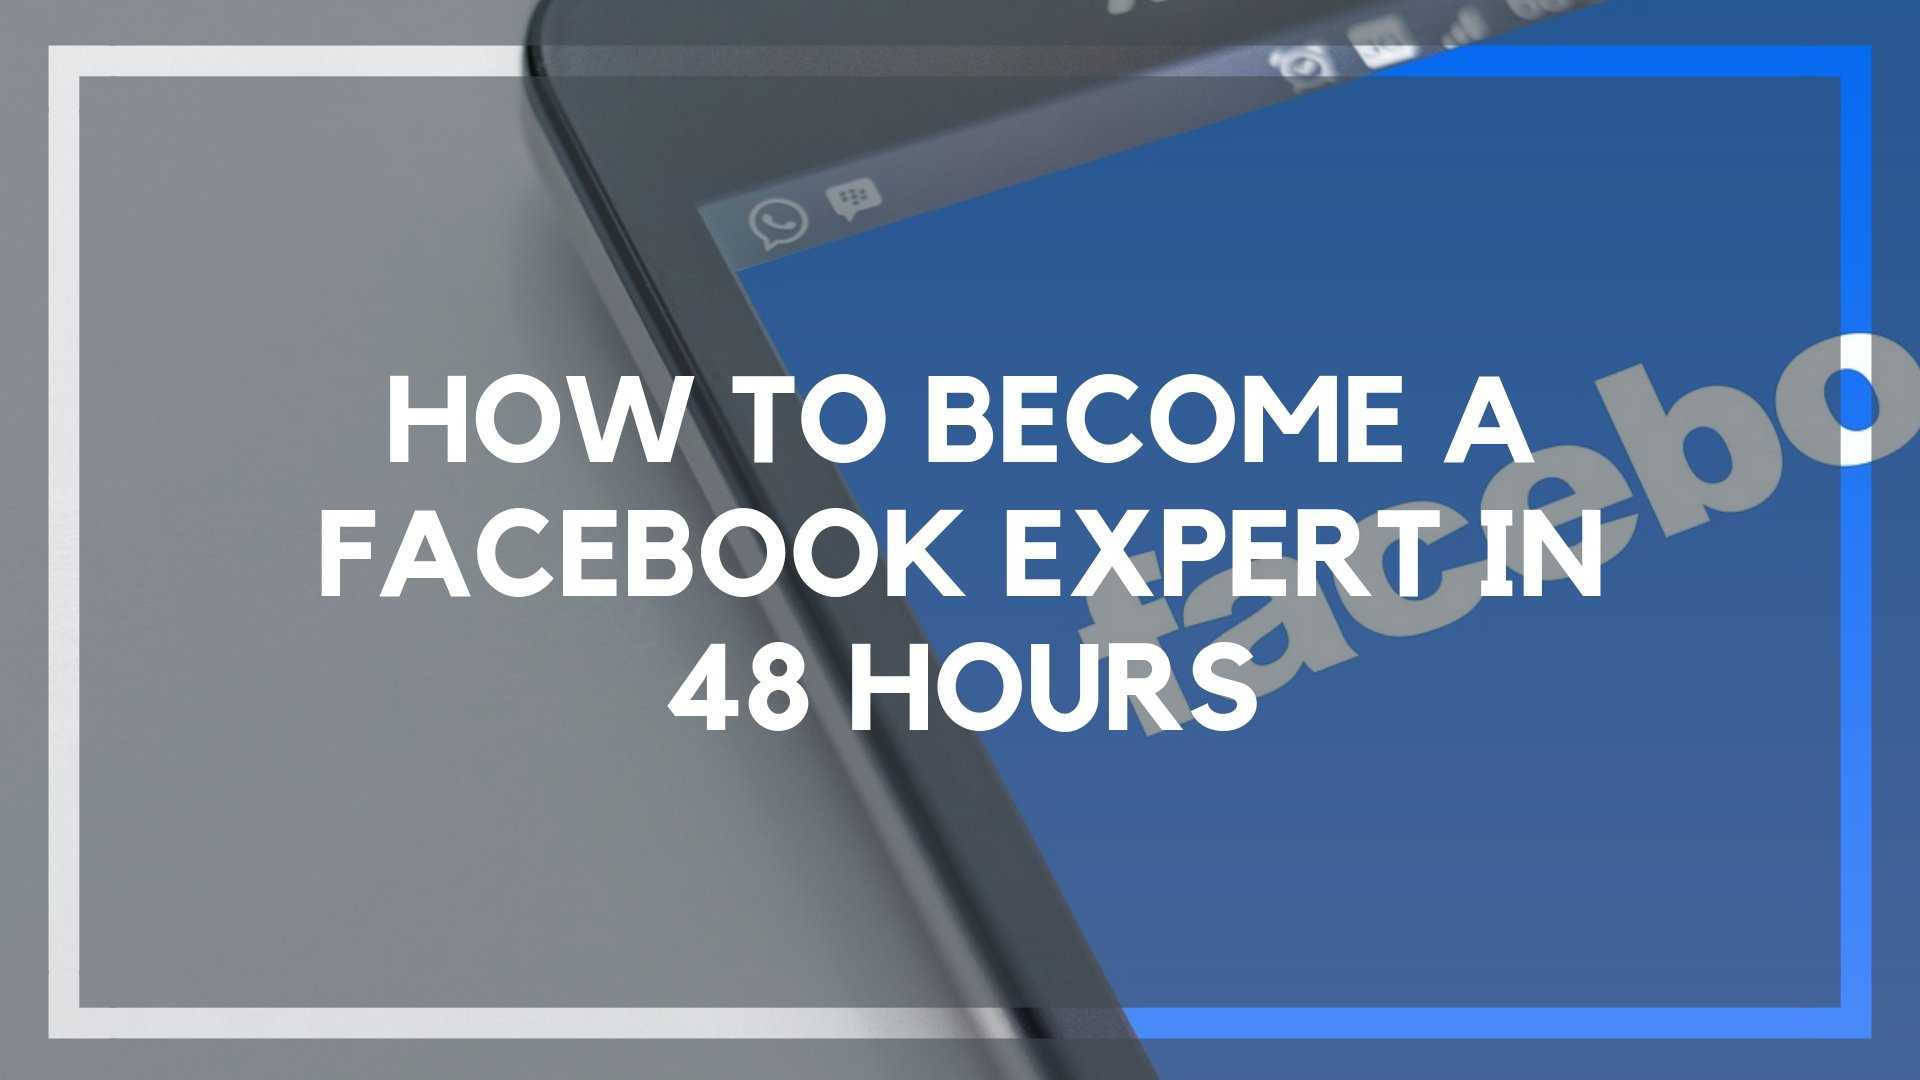 How to Become a Facebook Expert in 48 Hours